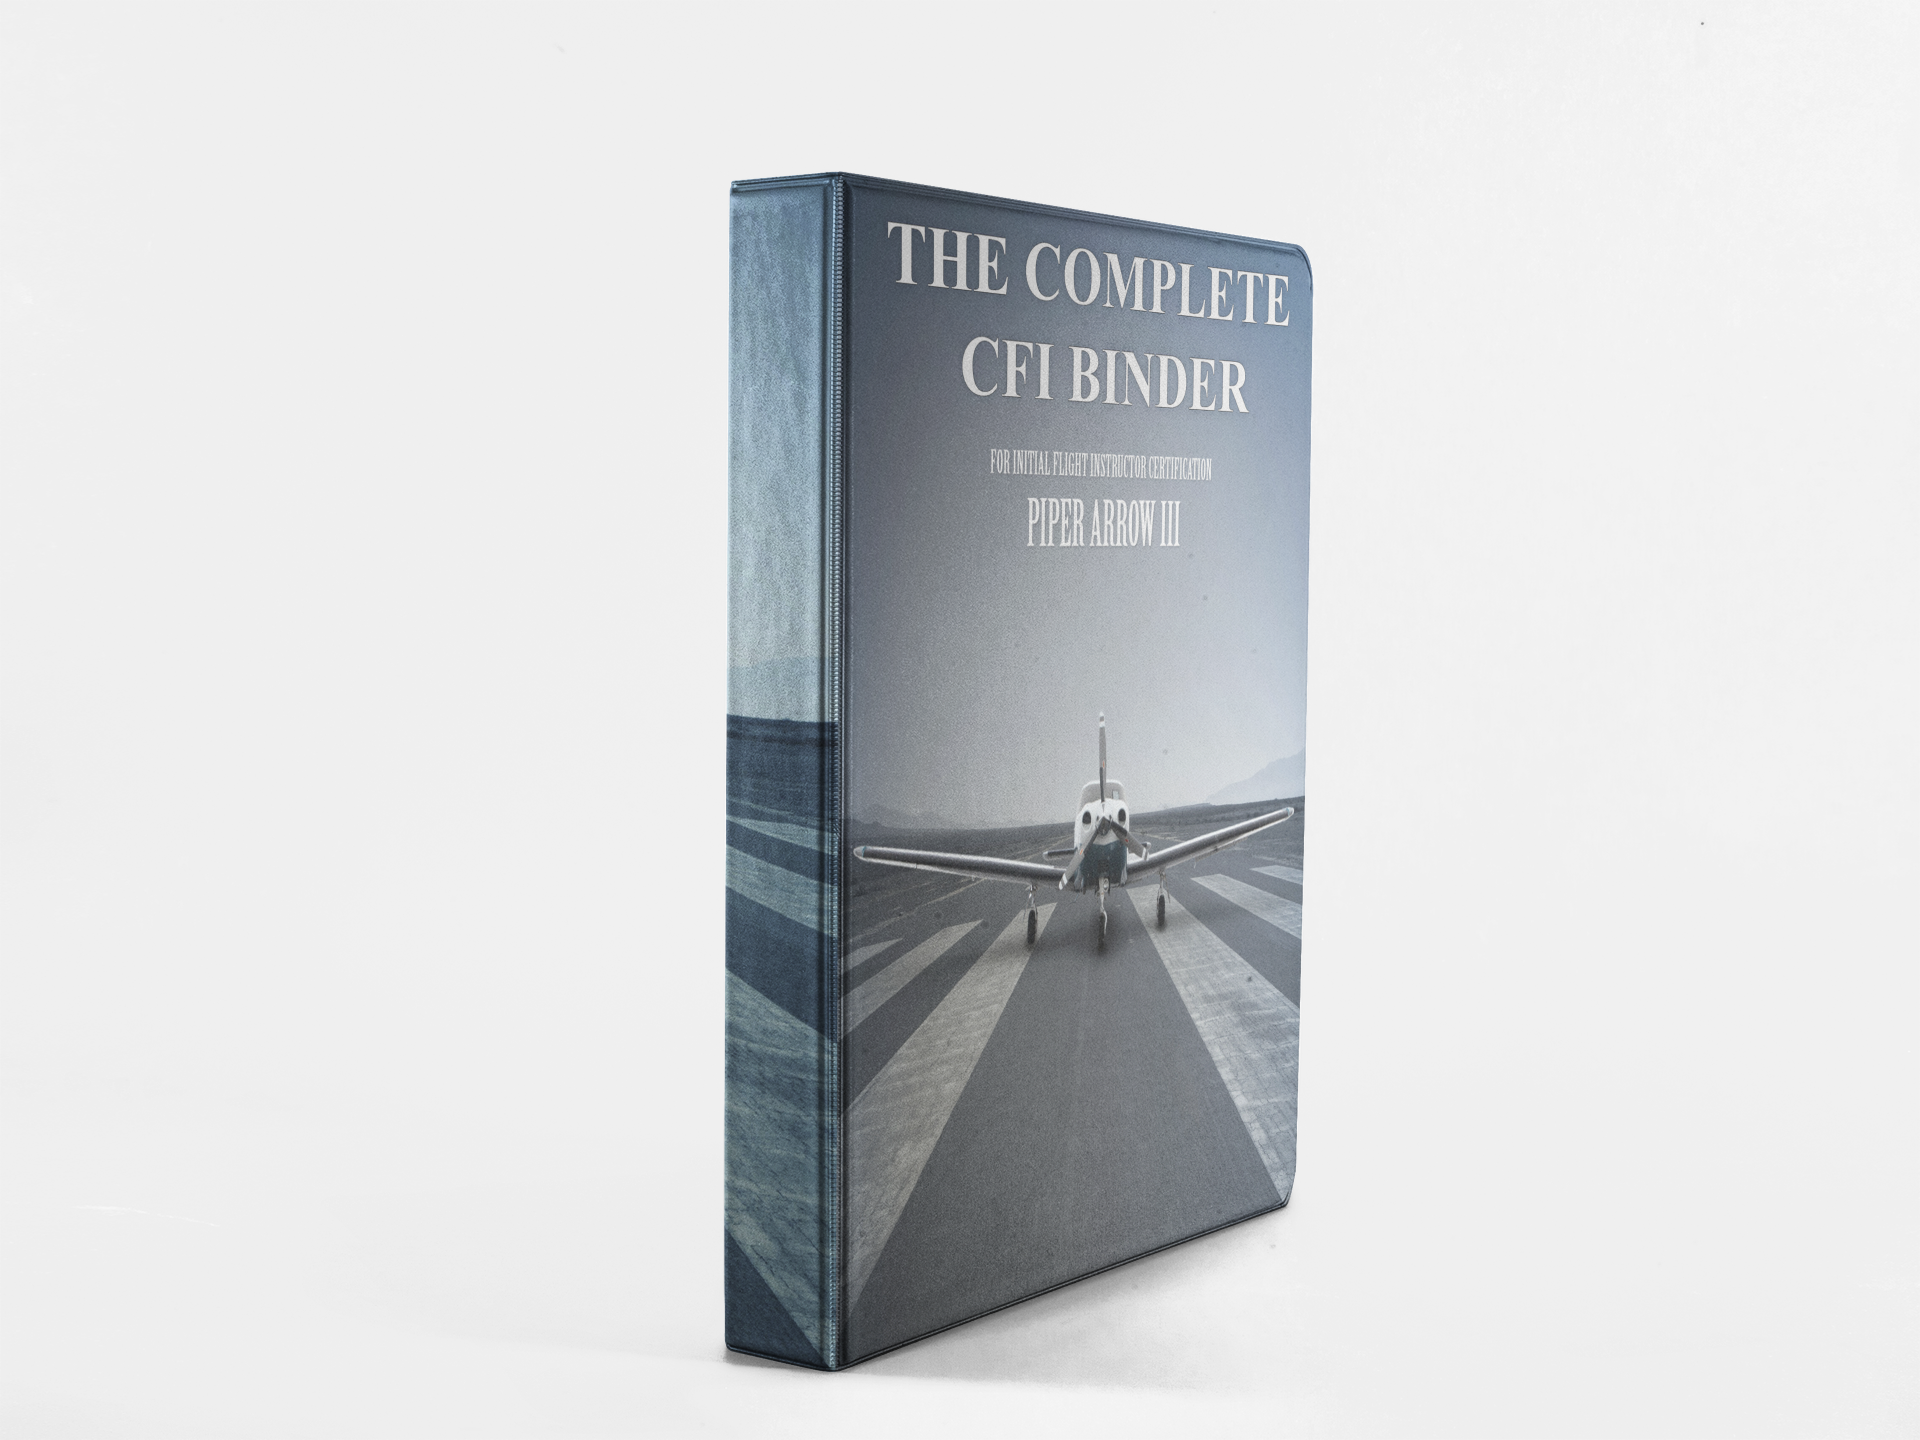 The Complete CFI Binder, Piper Arrow III Edition